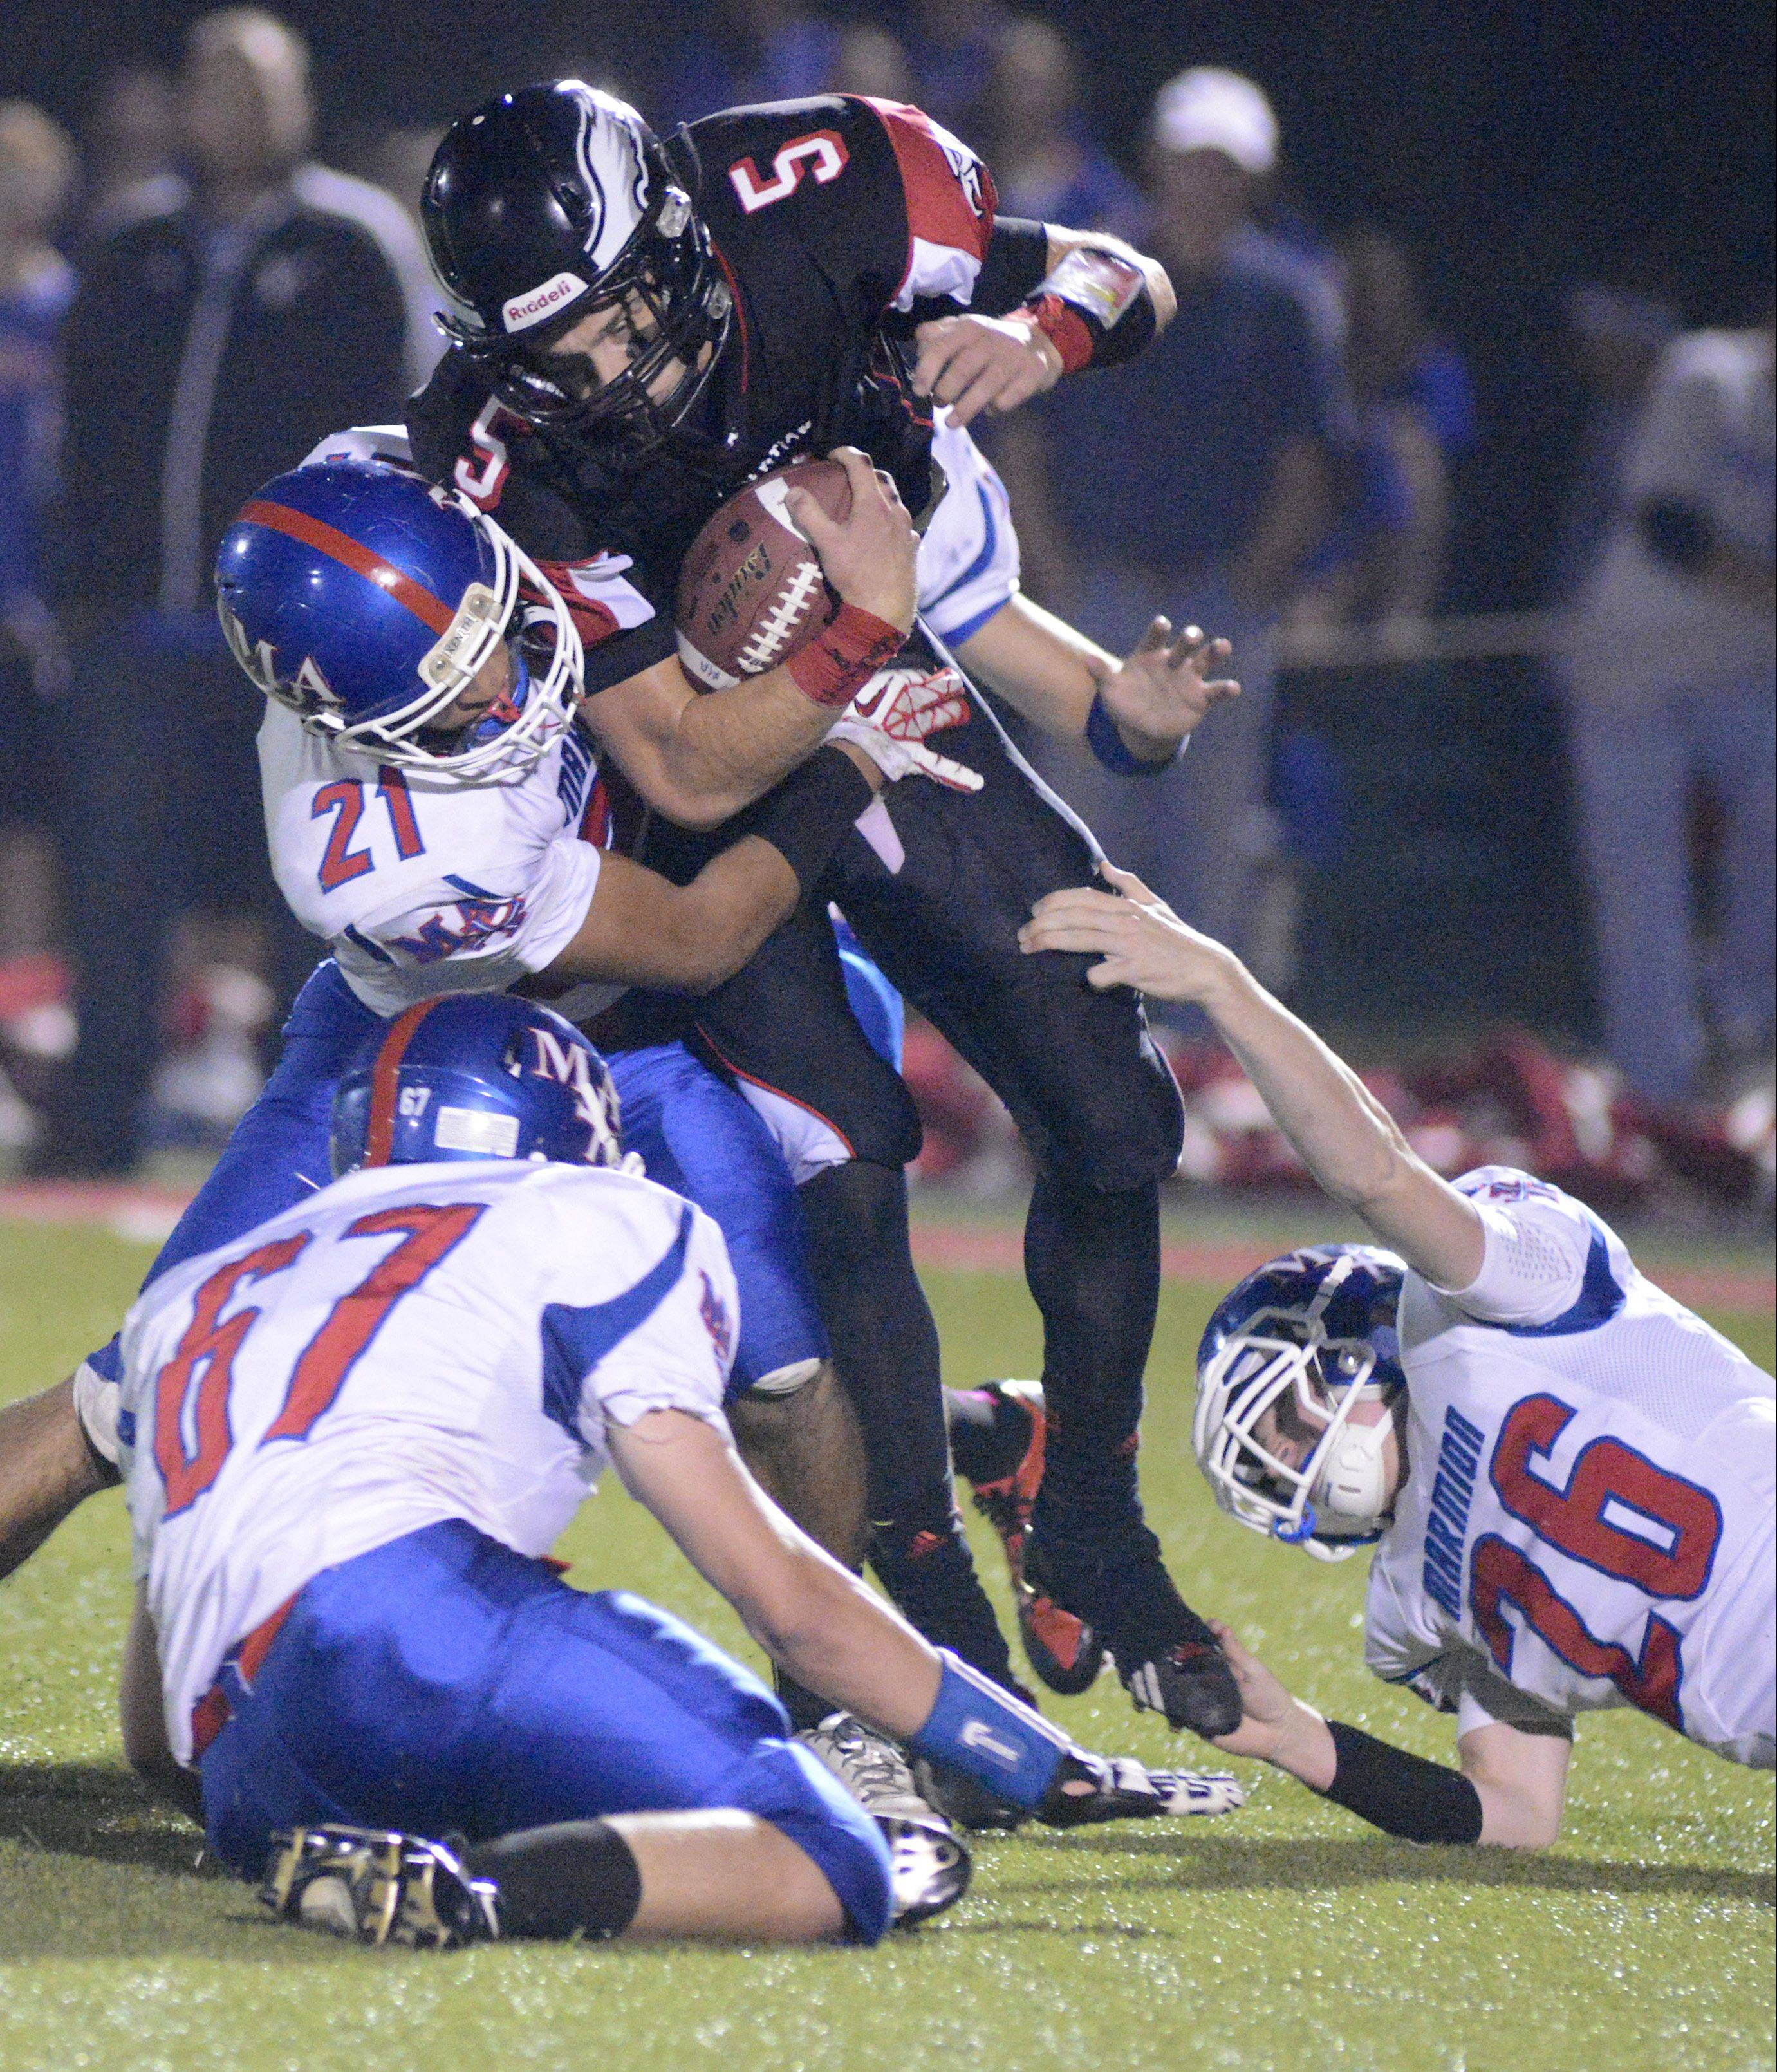 Marmion's defense made life tough on Aurora Christian Friday, with Enzo Olabi (21), Jimmy Rogers (67) and Matt Fredericks pictured here bringing down Noah Roberts.